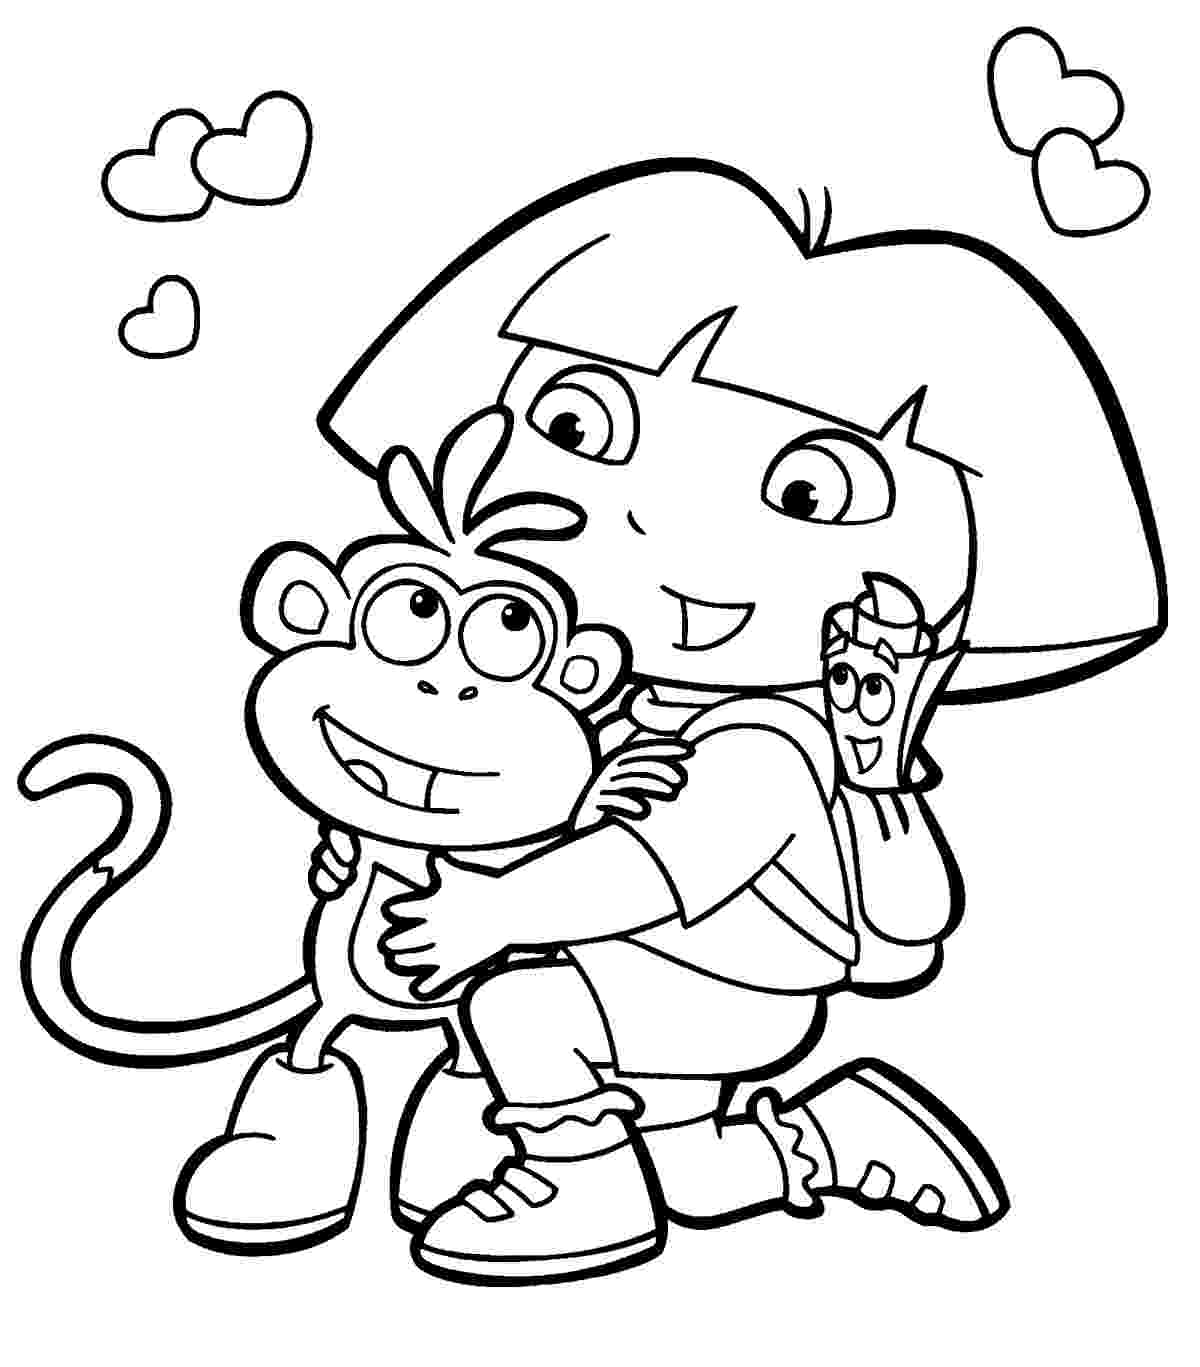 dora explorer coloring pages free printable free printable dora the explorer coloring pages for kids printable dora coloring pages free explorer